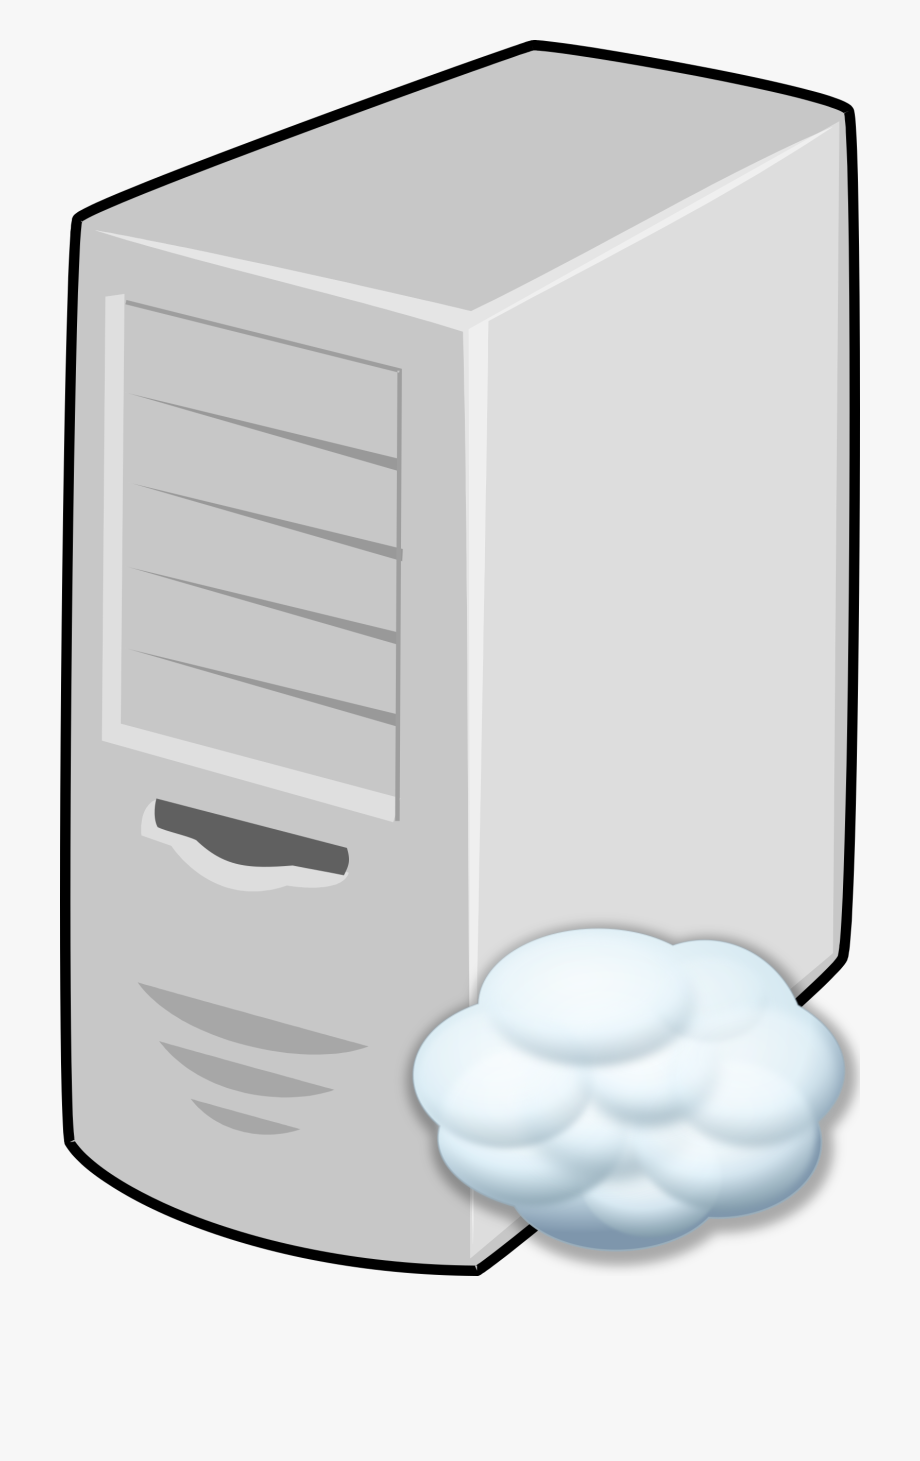 Server Clipart For Powerpoint.